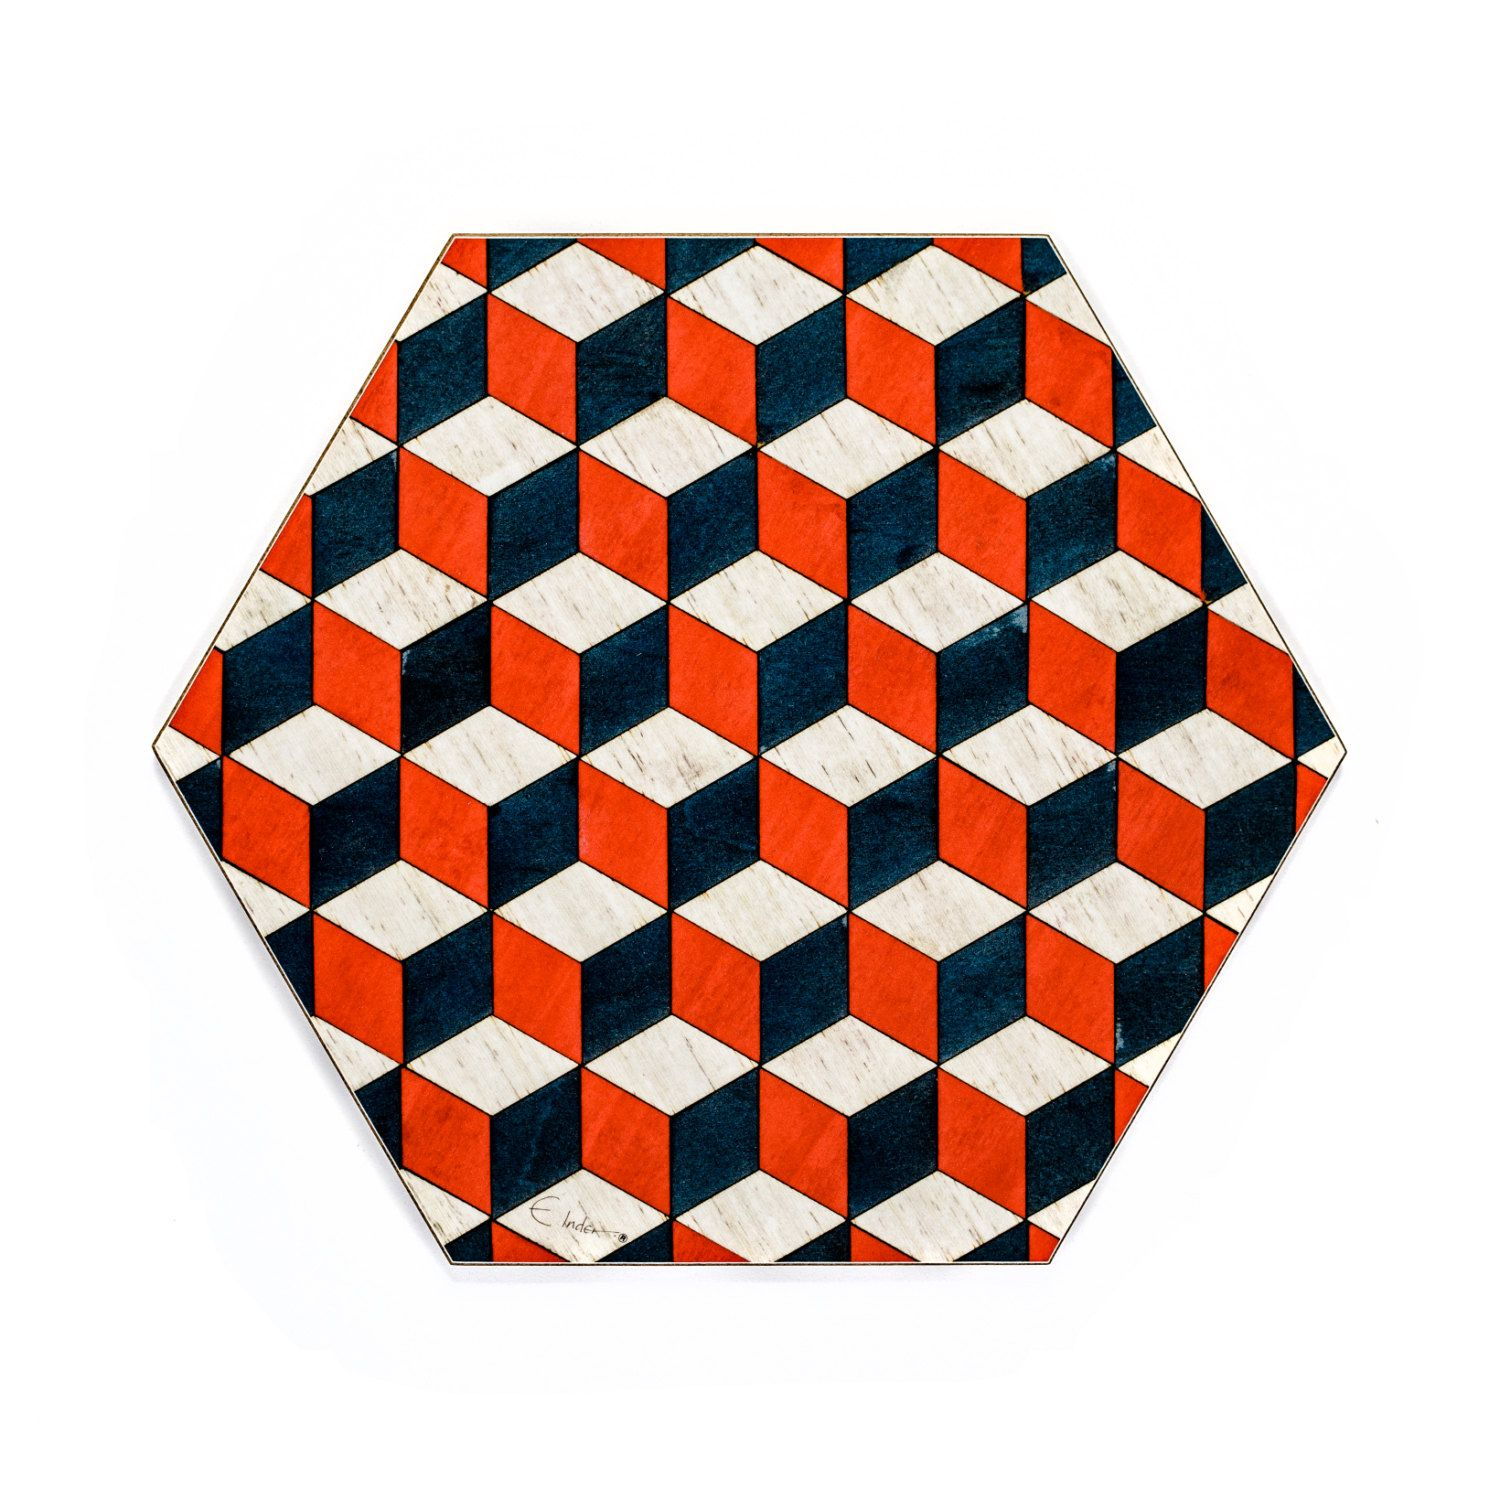 4 Hexagon Placemats Retro Style £32 Per Set Heat Resistant Melamine With  Dark Green Baize Underneath To Protect Furniture Matching Coasters Avai…